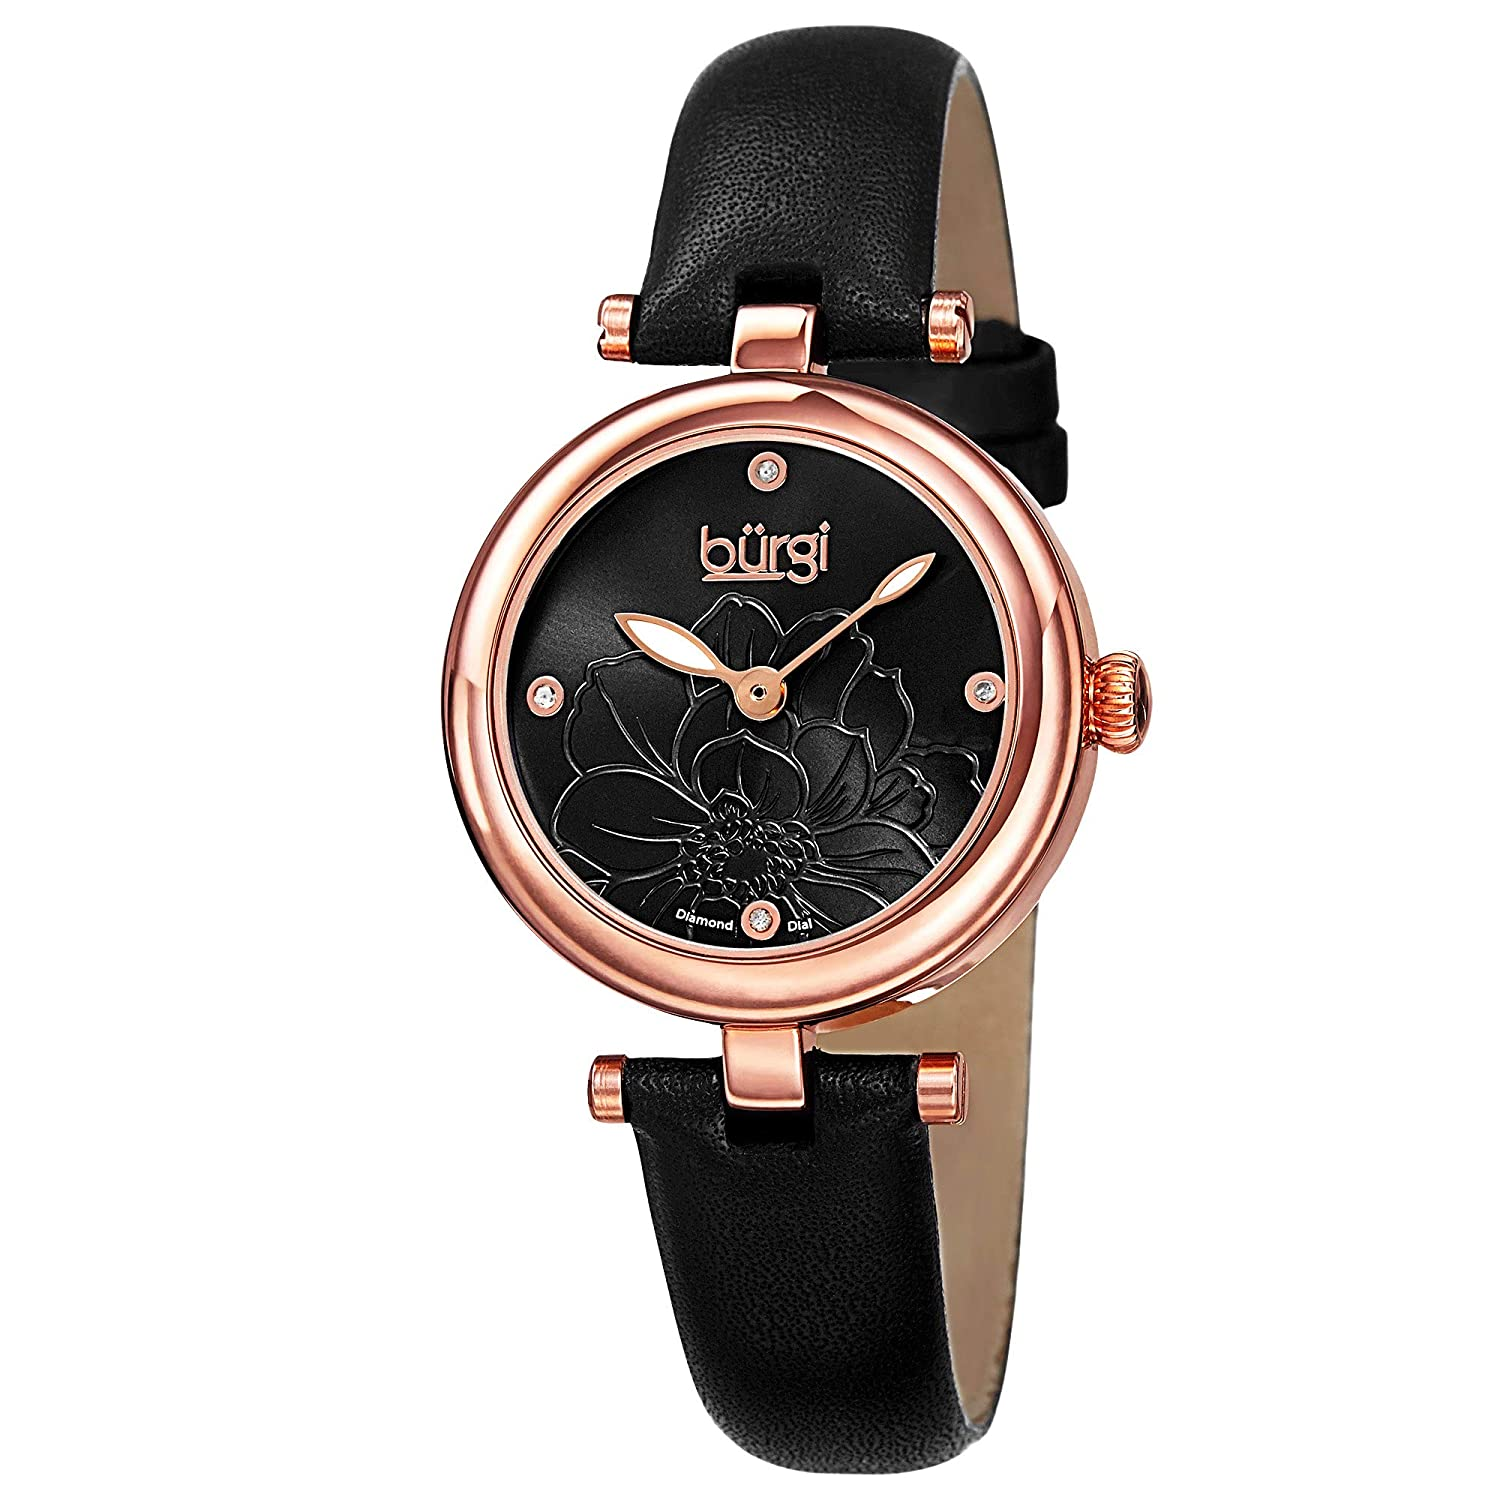 Burgi Diamond Accented Flower Dial Watch – 4 Diamond Hour Markers On Genuine Leather Strap – BUR128